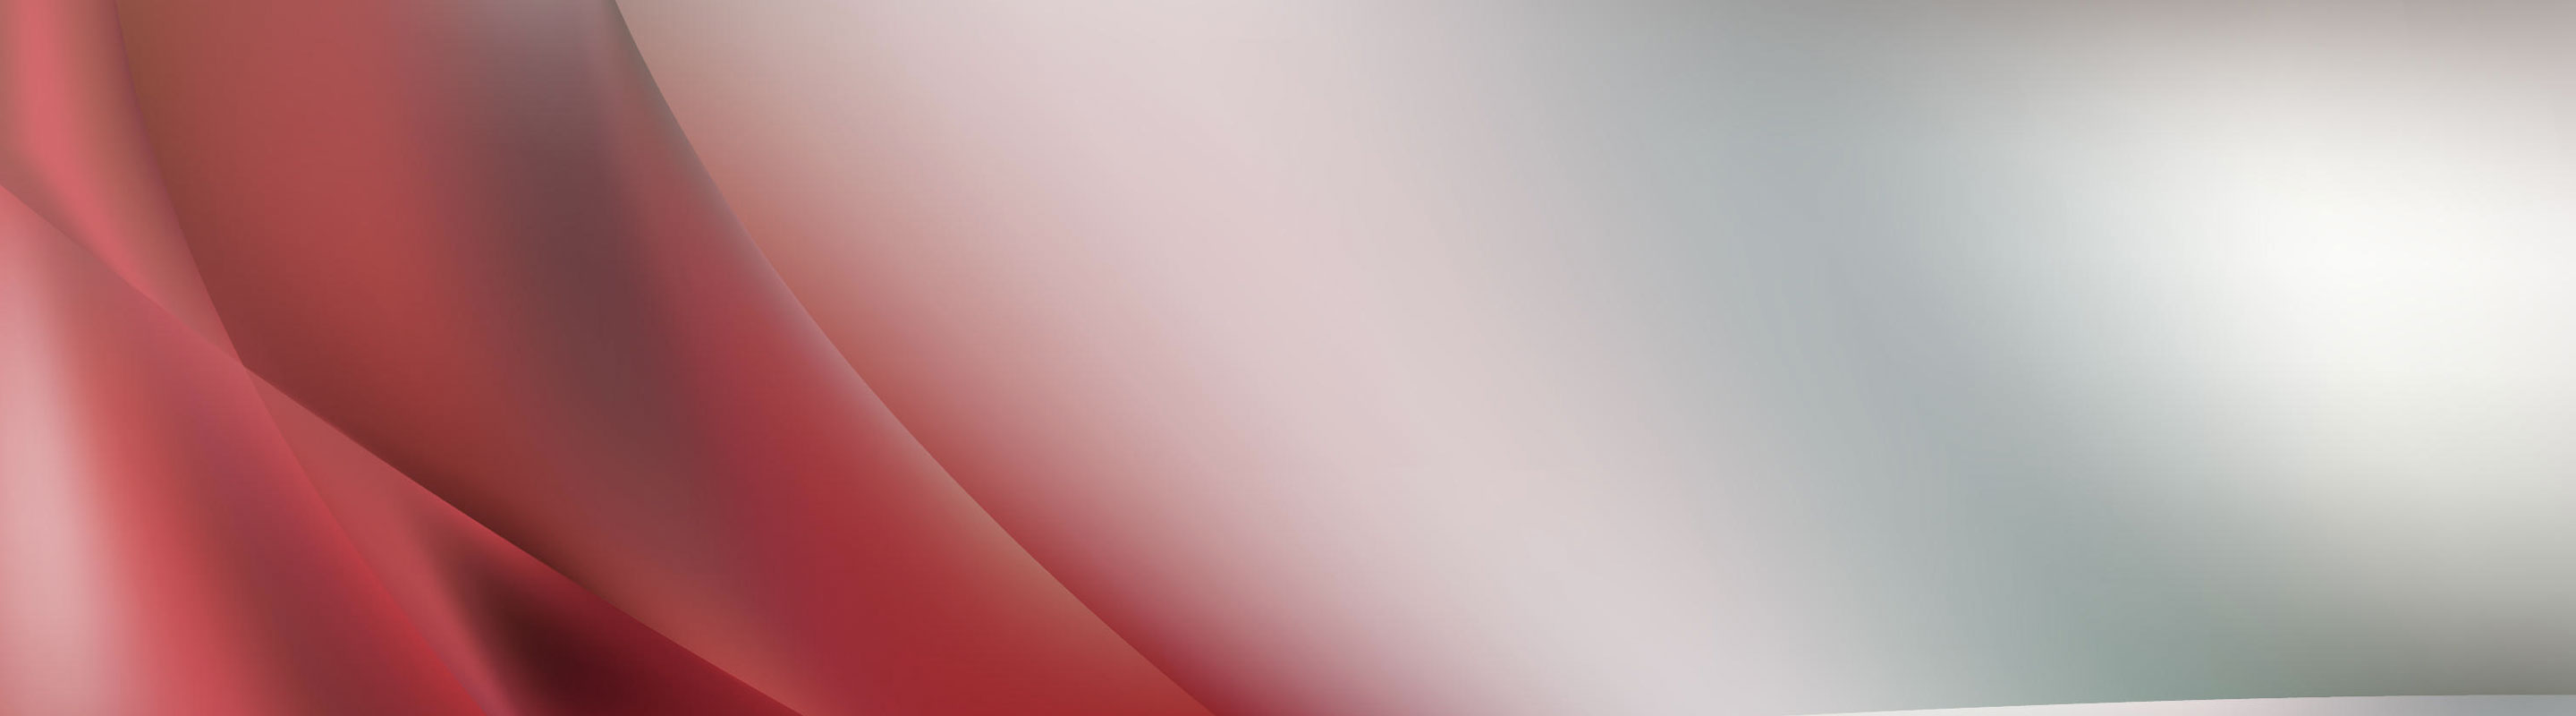 red snapper background